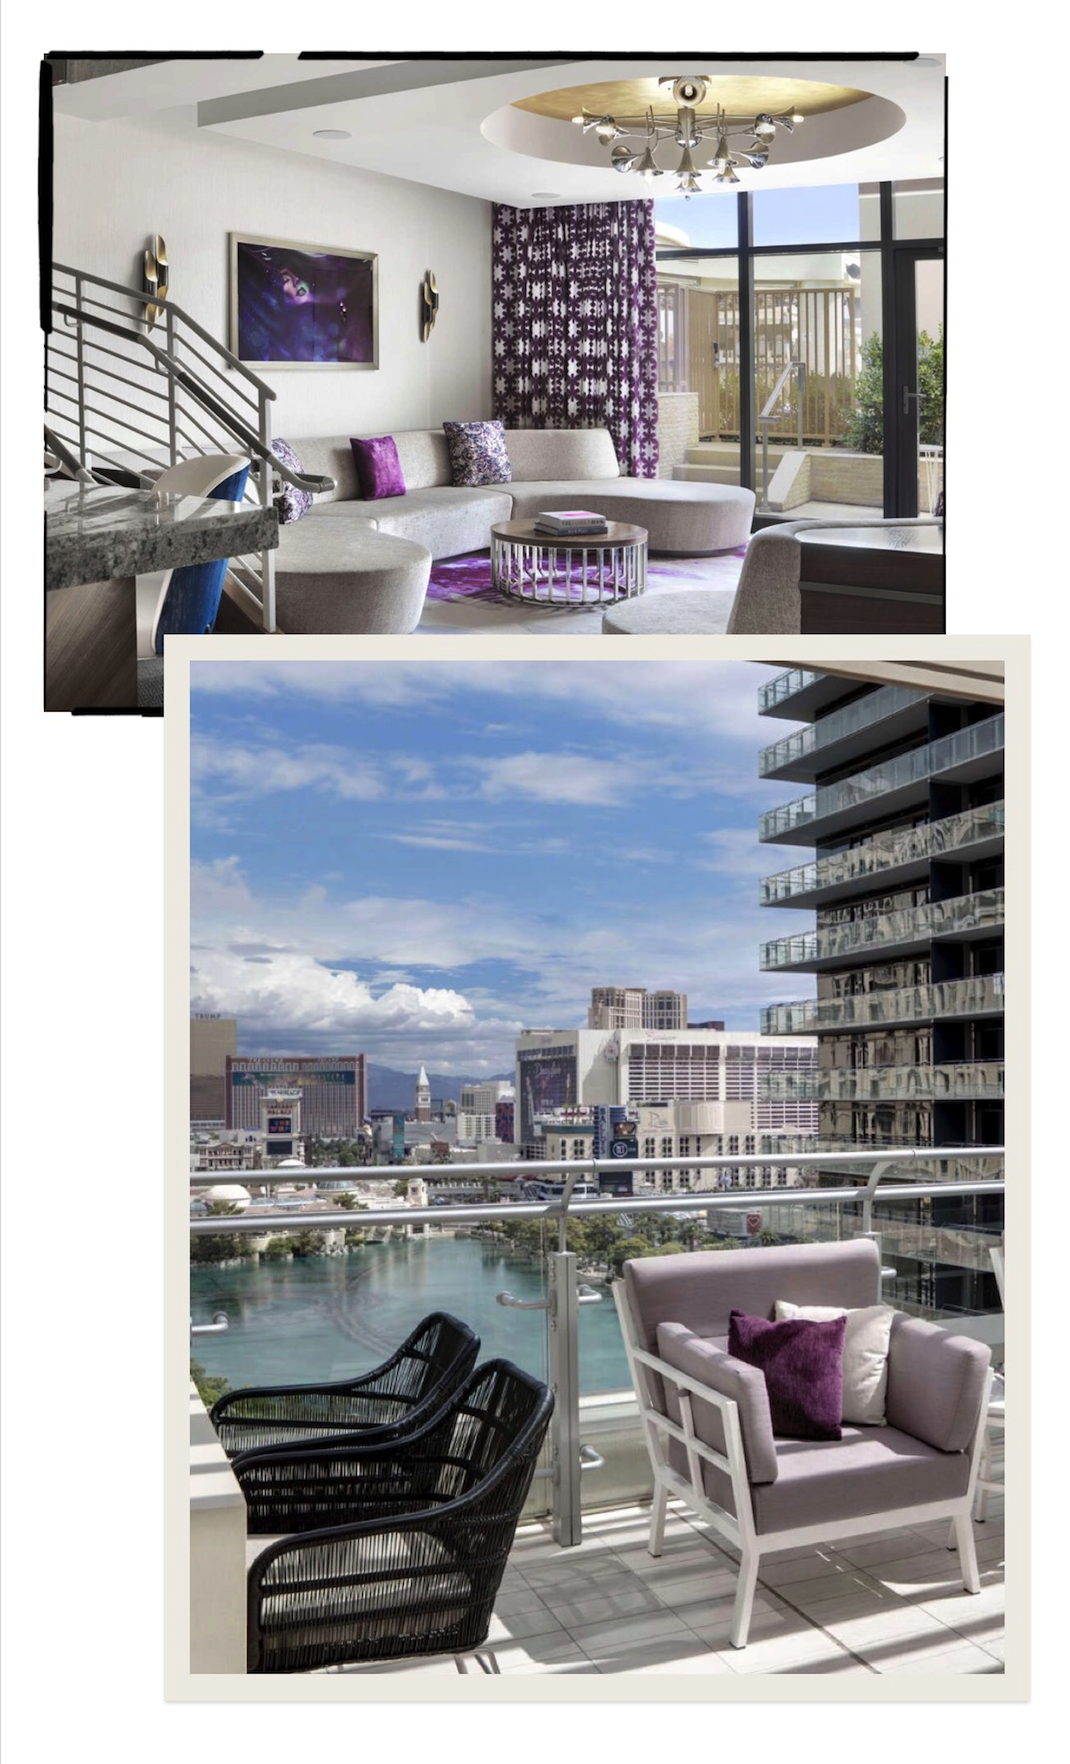 places to stay in las vegas - best las vegas hotels - list of las vegas hotels - best area to stay in las vegas - list of las vegas hotels - best places to stay in vegas on the strip - where to stay in vegas first time - which vegas hotel should i stay at -  cosmopolitan las vegas - the cosmopolitan